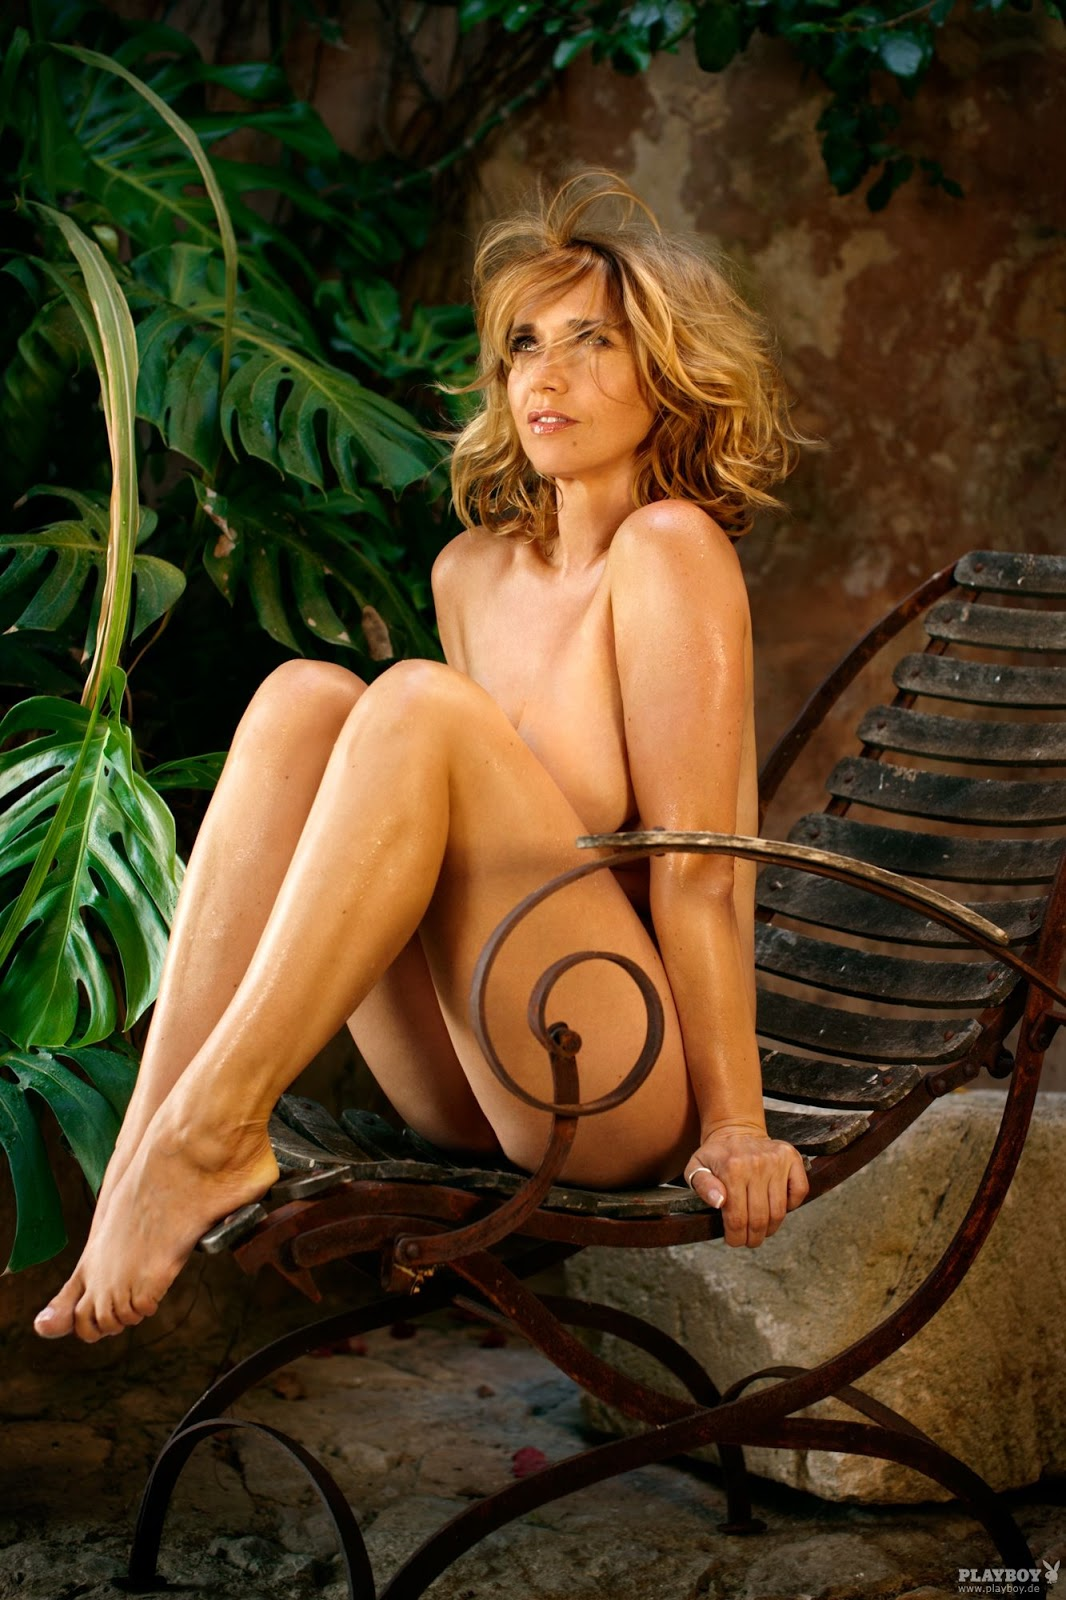 Tina Louise Nude Naked - Hot Girls Wallpaper